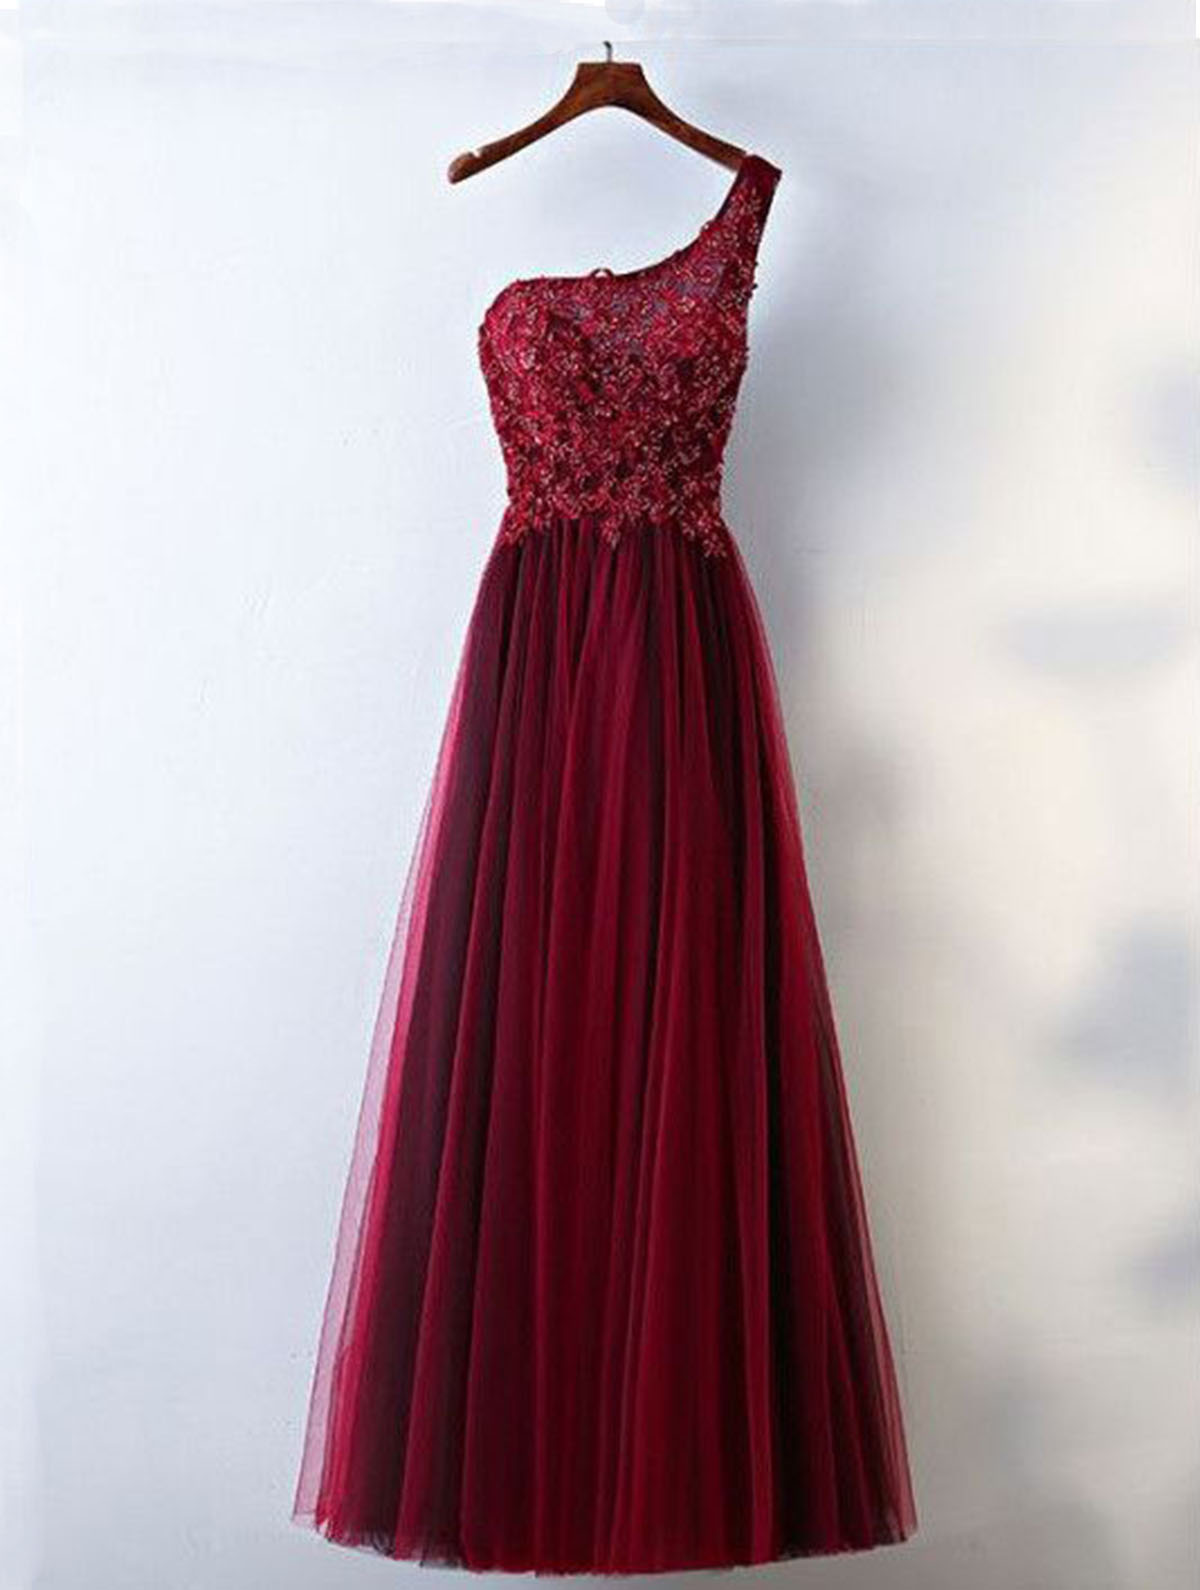 Burgundy tulle one shoulder beads long bridesmaid dress with lace burgundy tulle one shoulder beads long bridesmaid dress with lace ombrellifo Choice Image